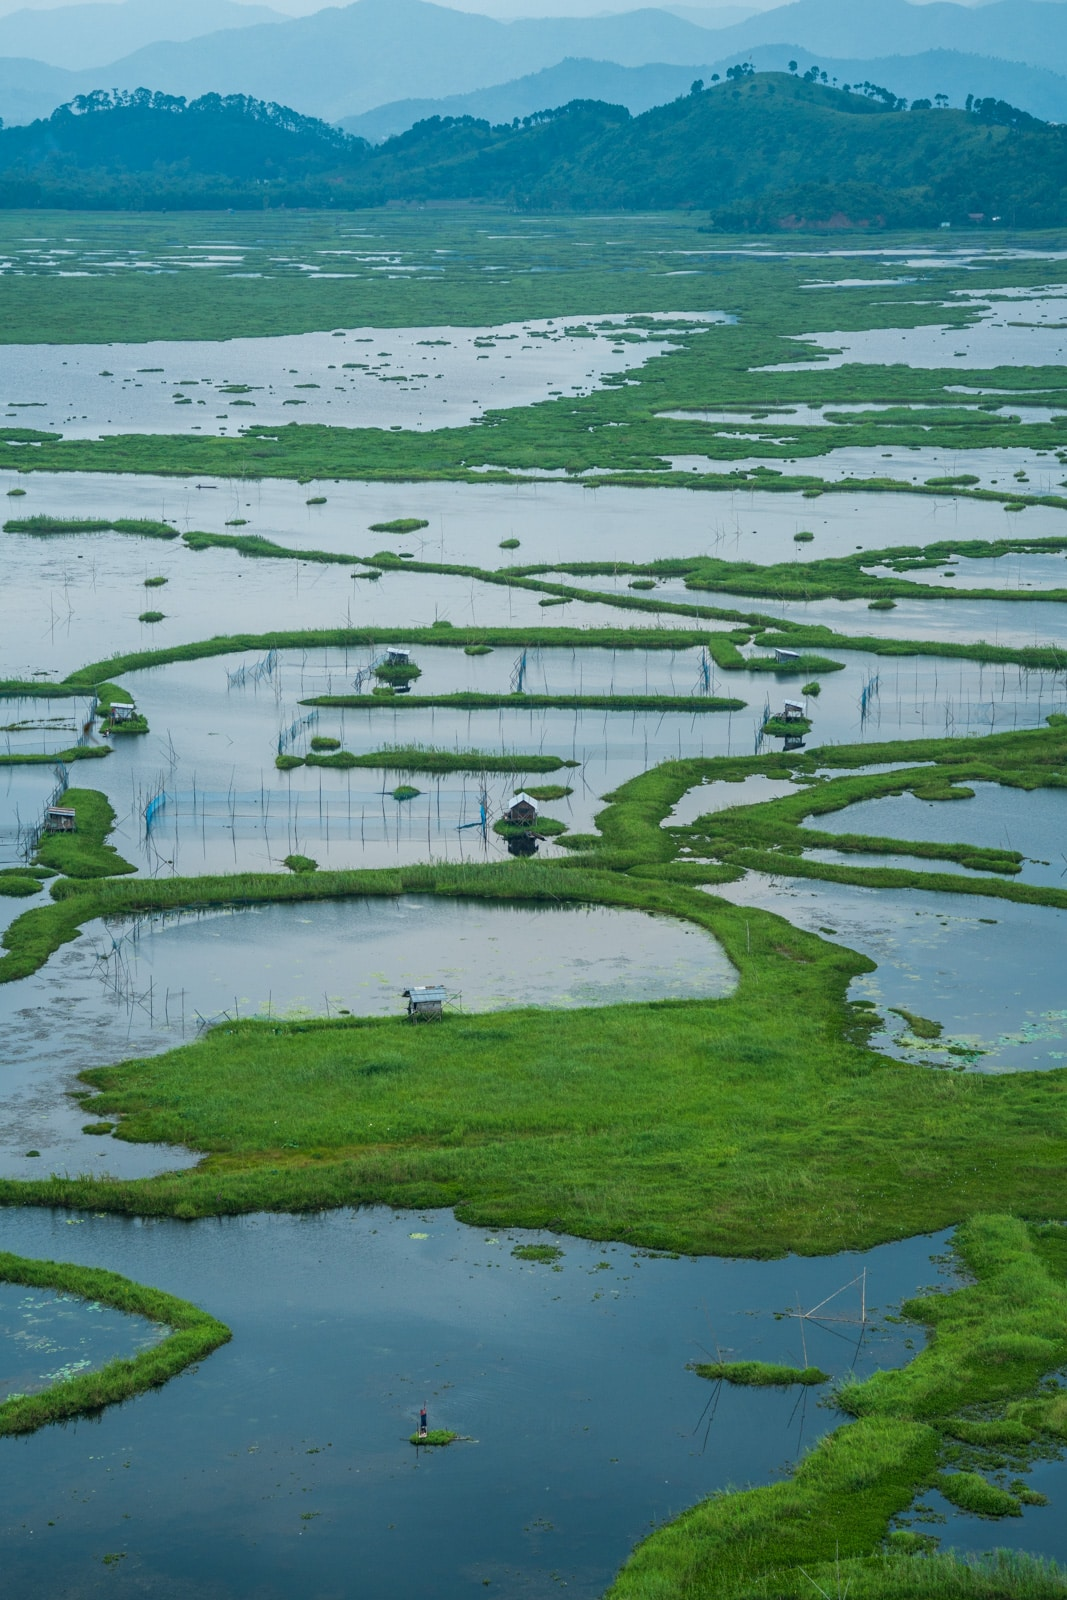 Floating islands of phumdis on Loktak Lake, an off the beaten track destination in Manipur state, Northeast India.